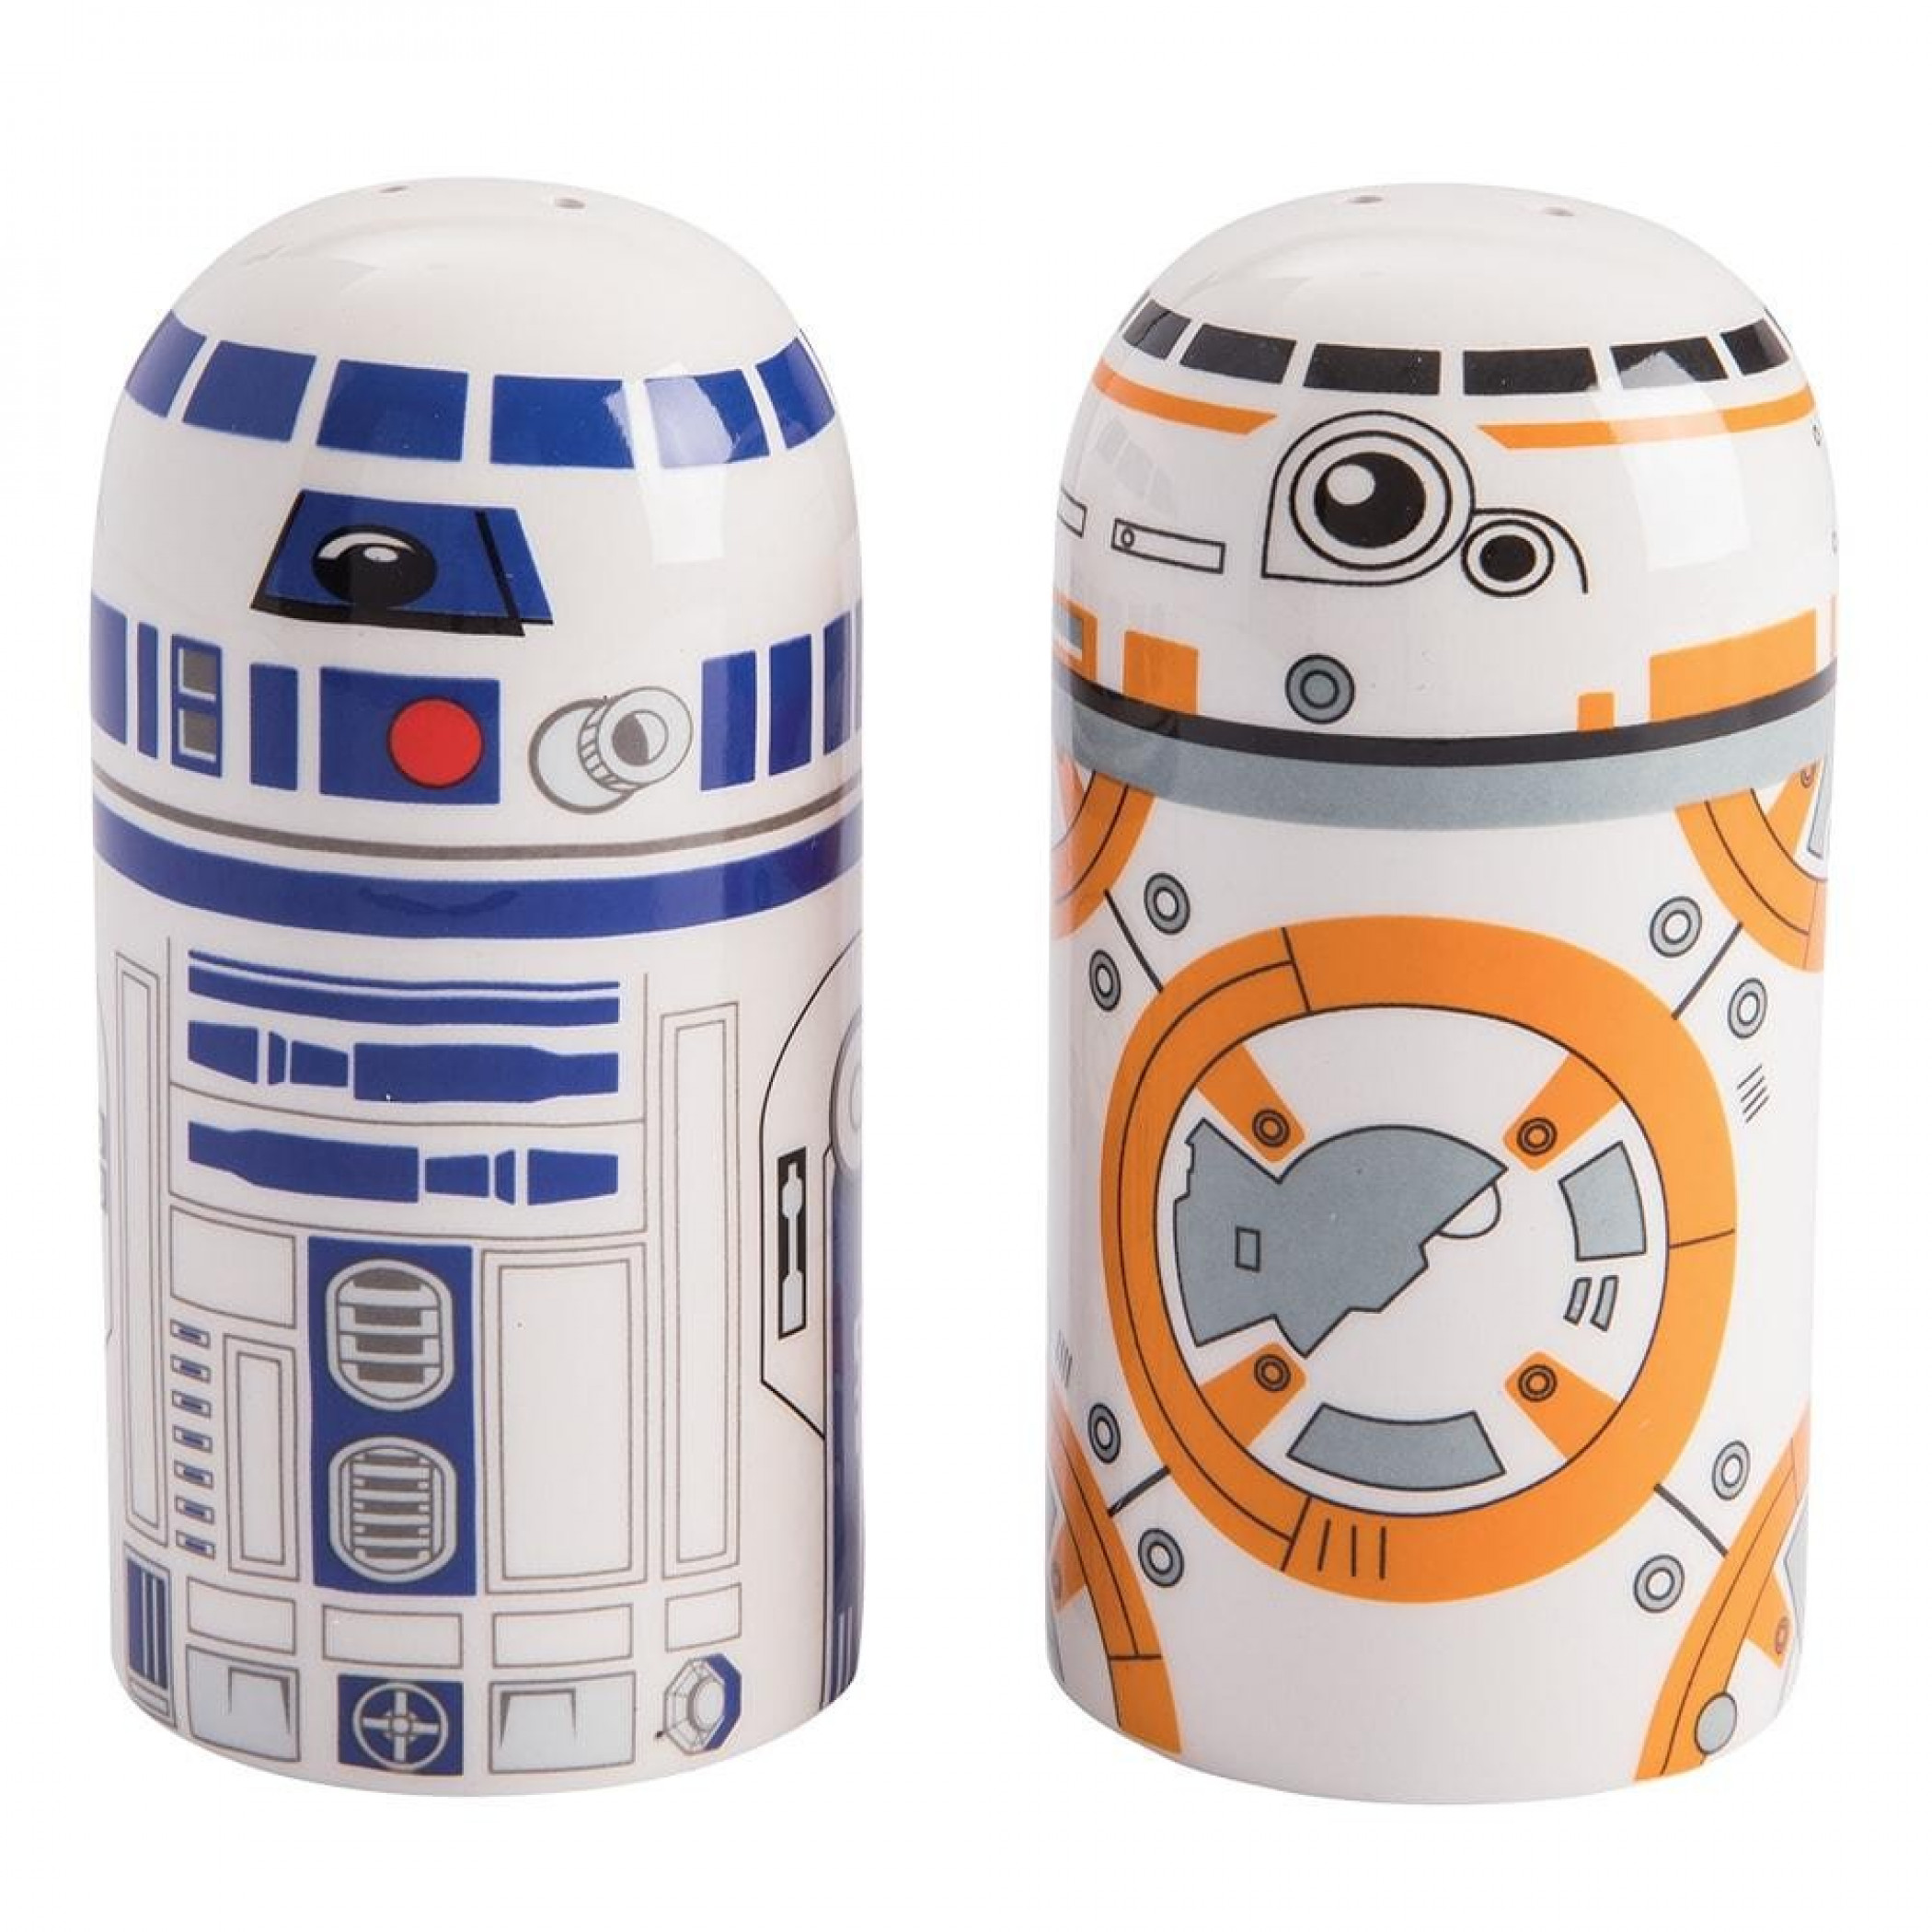 Star Wars BB-8 & R2-D2 Sculpted Salt & Pepper Set